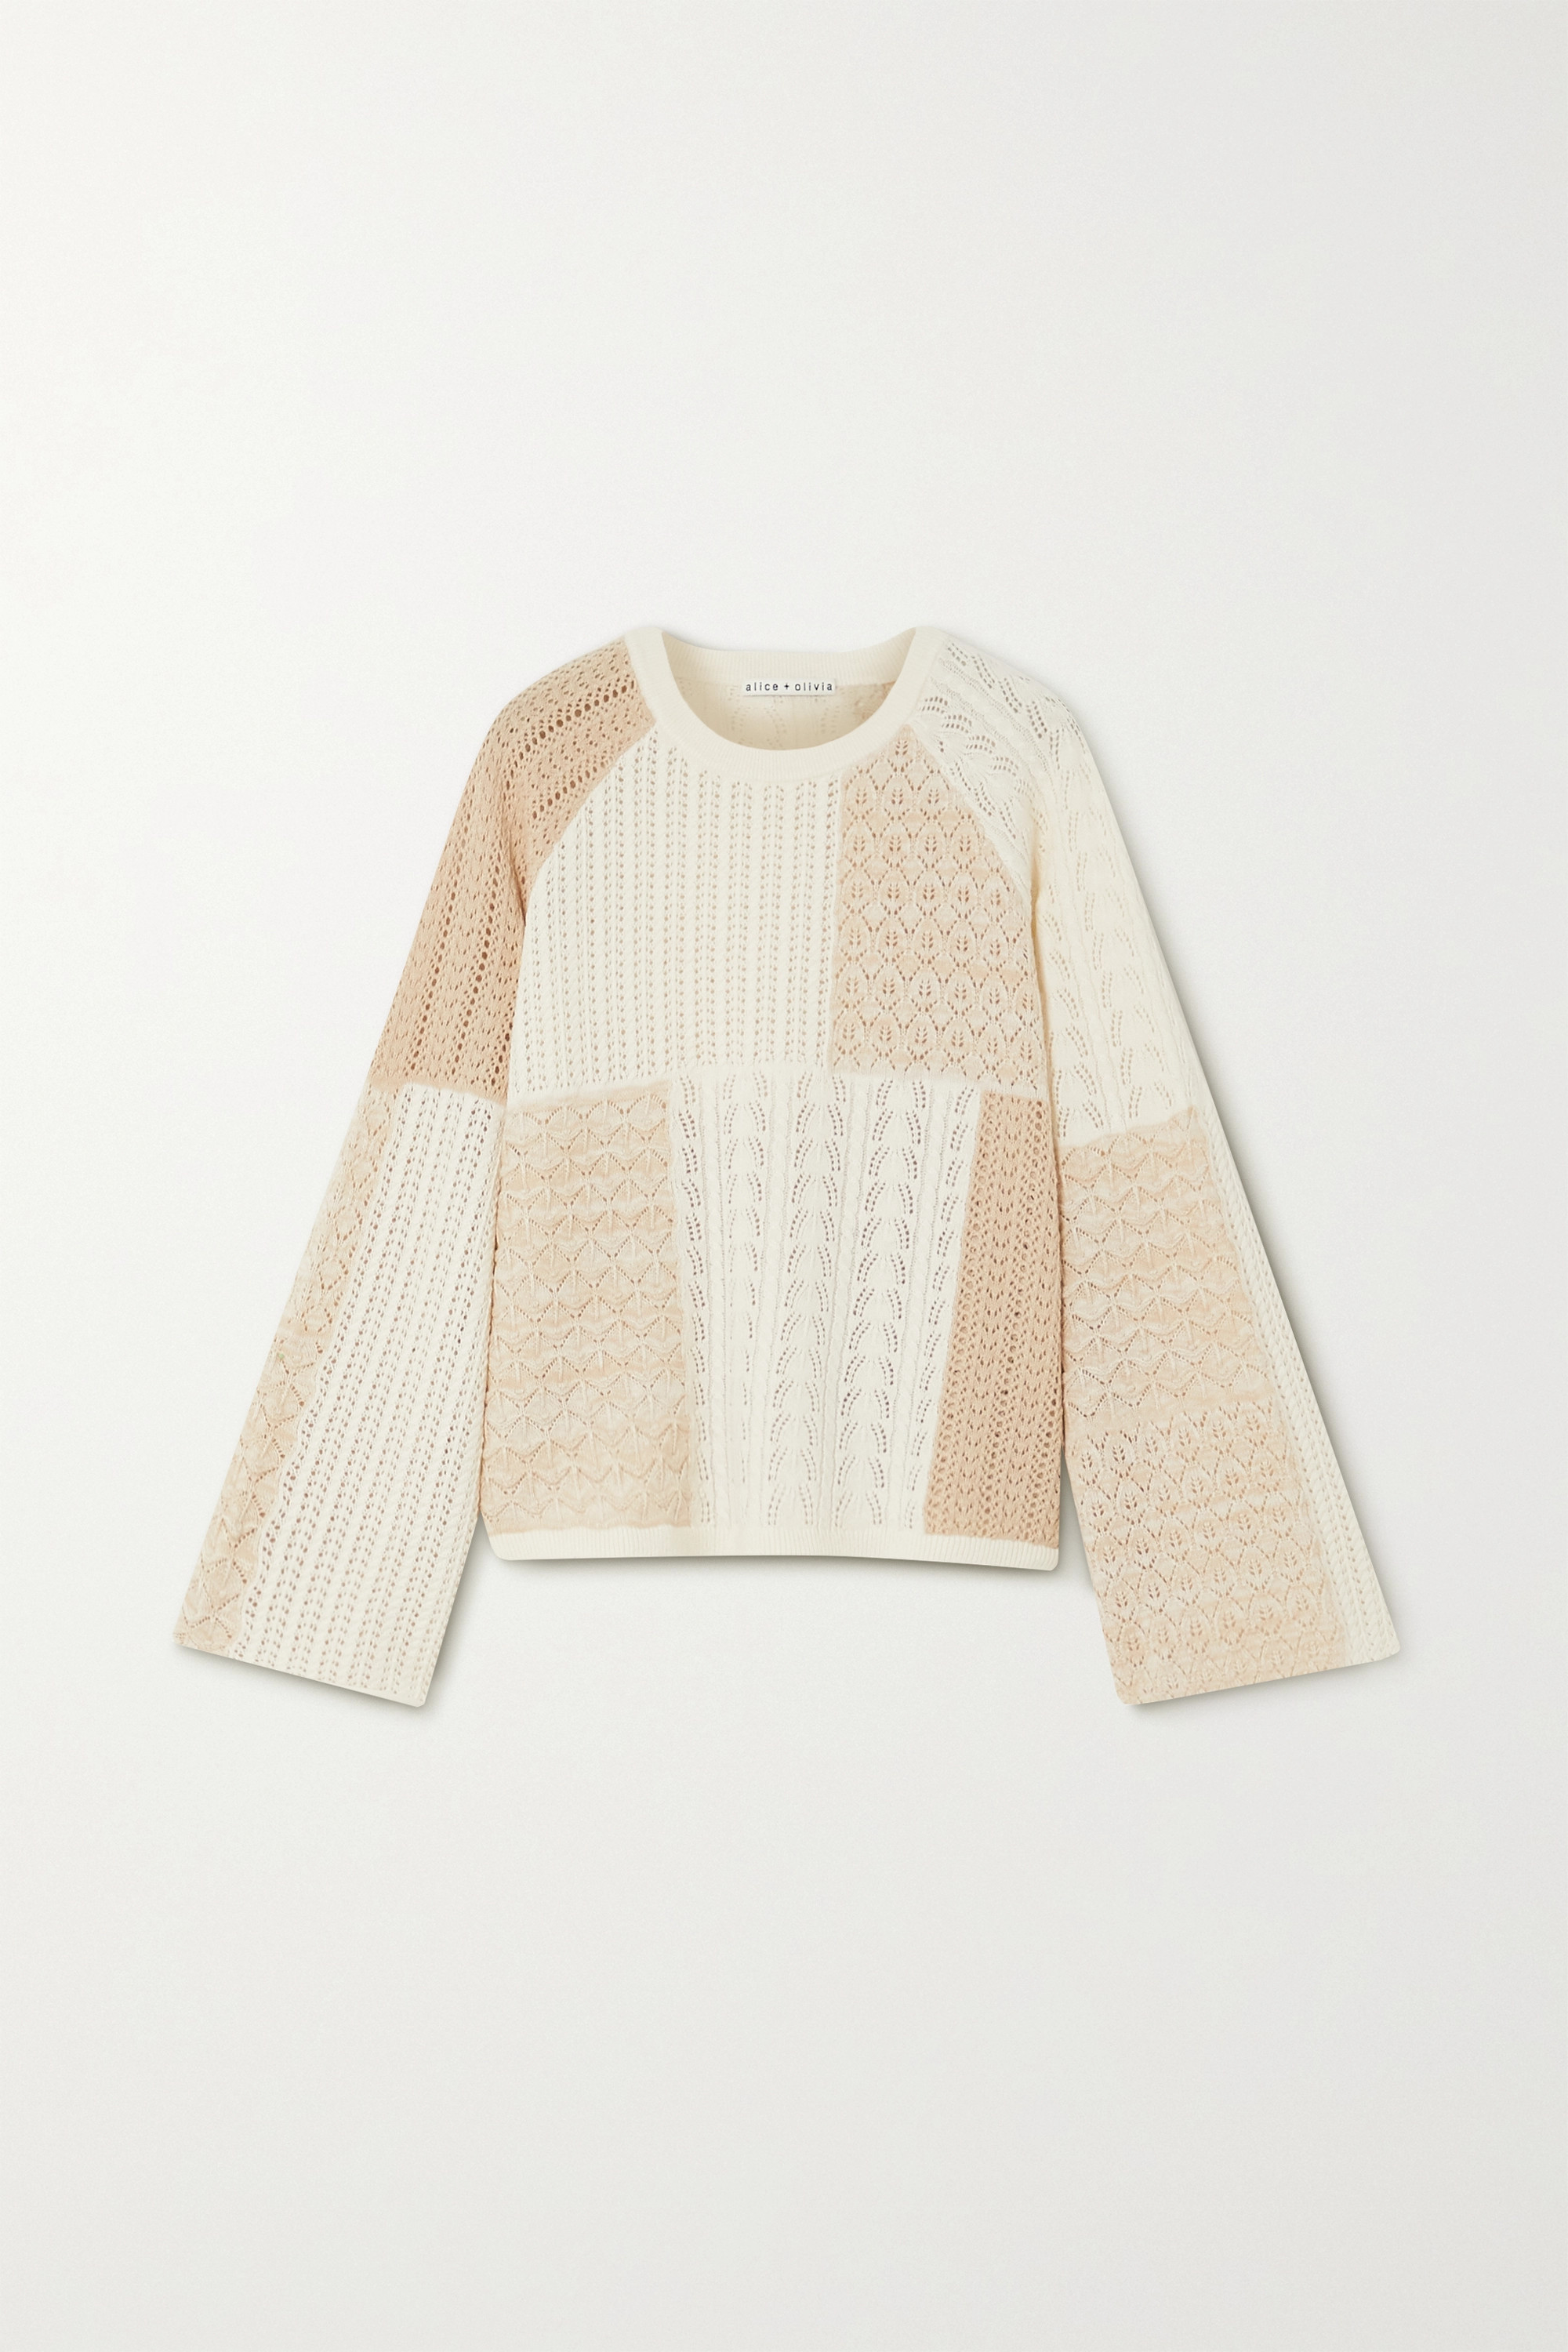 Alice + Olivia Martha Pullover aus Pointelle-Strick aus einer Wollmischung in Patchwork-Optik